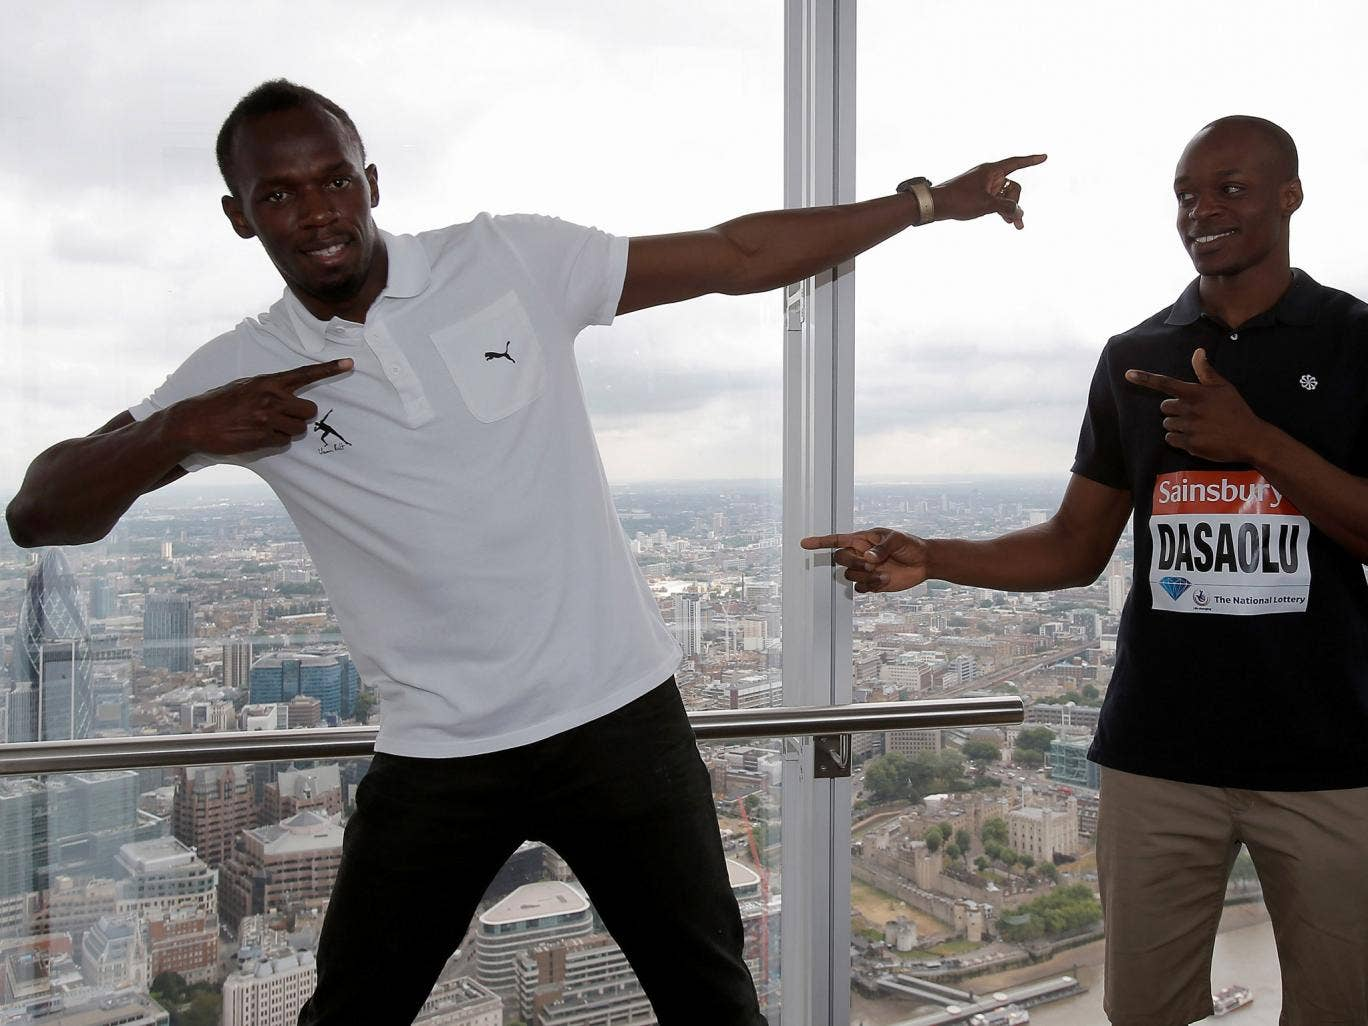 Usain Bolt (left) and James Dasaolu visit the Shard in London